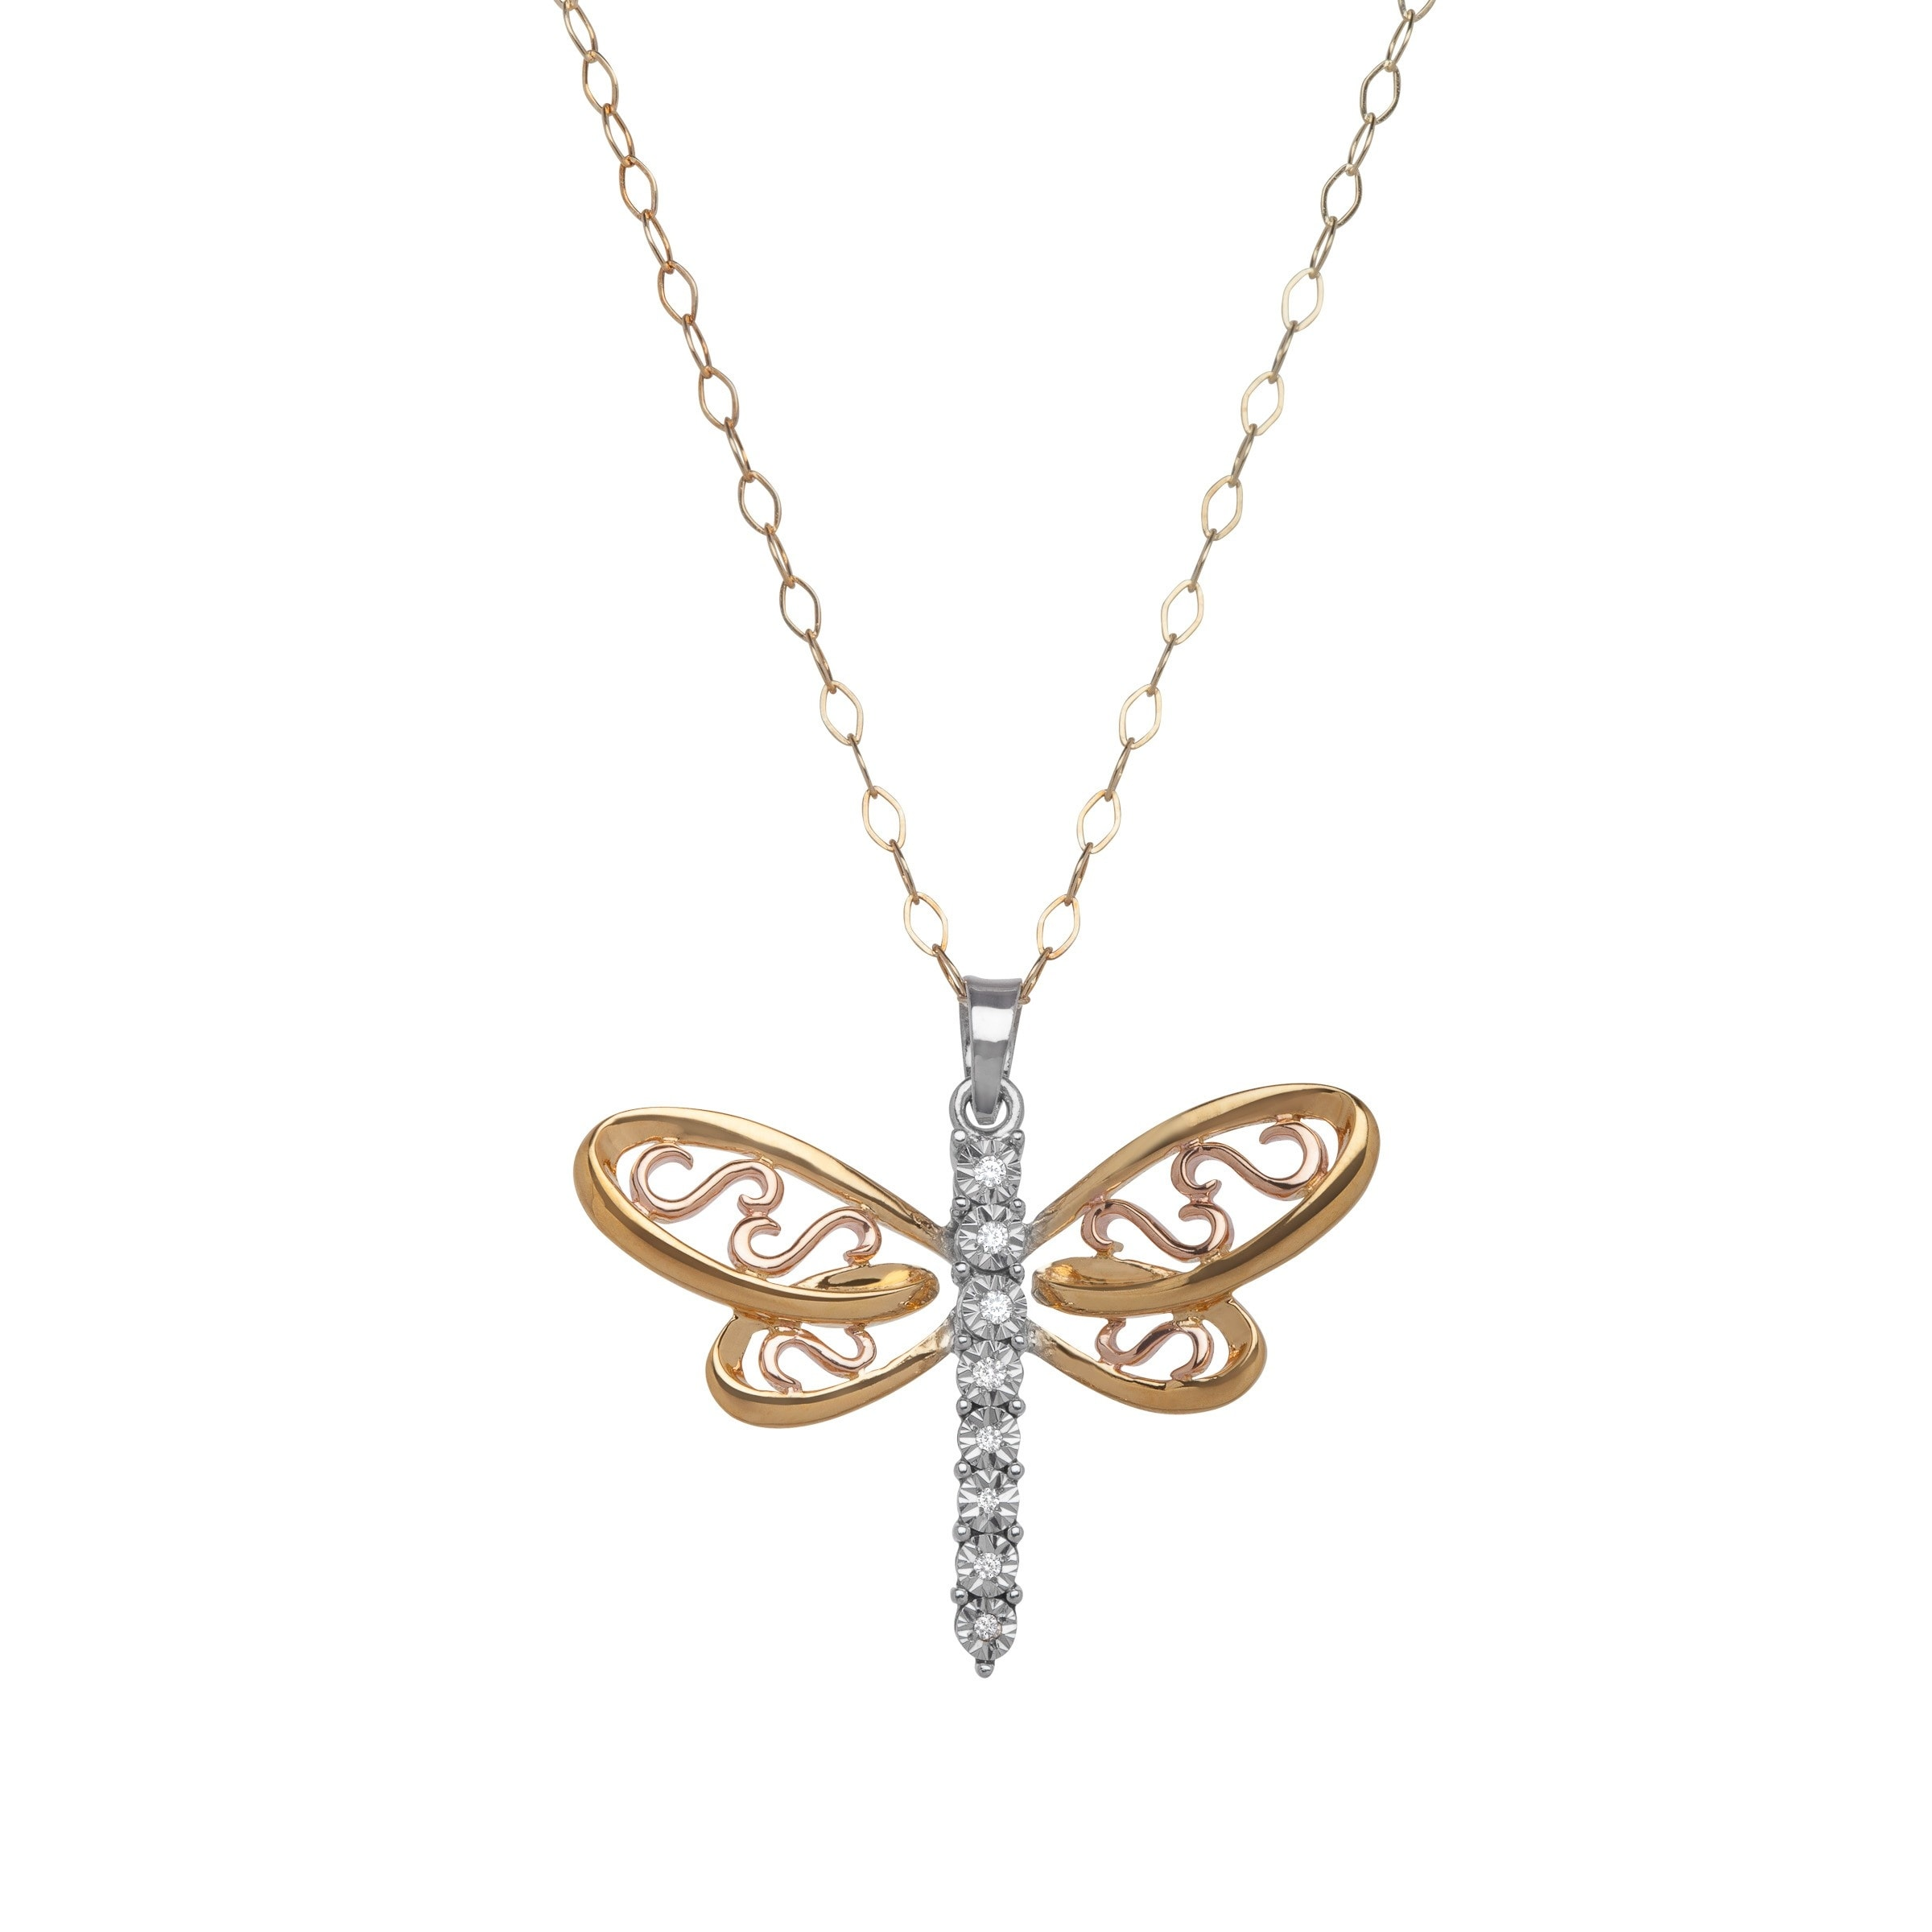 necklaces diamond and enamel pendant products dragonfly enlarged necklace jewelry